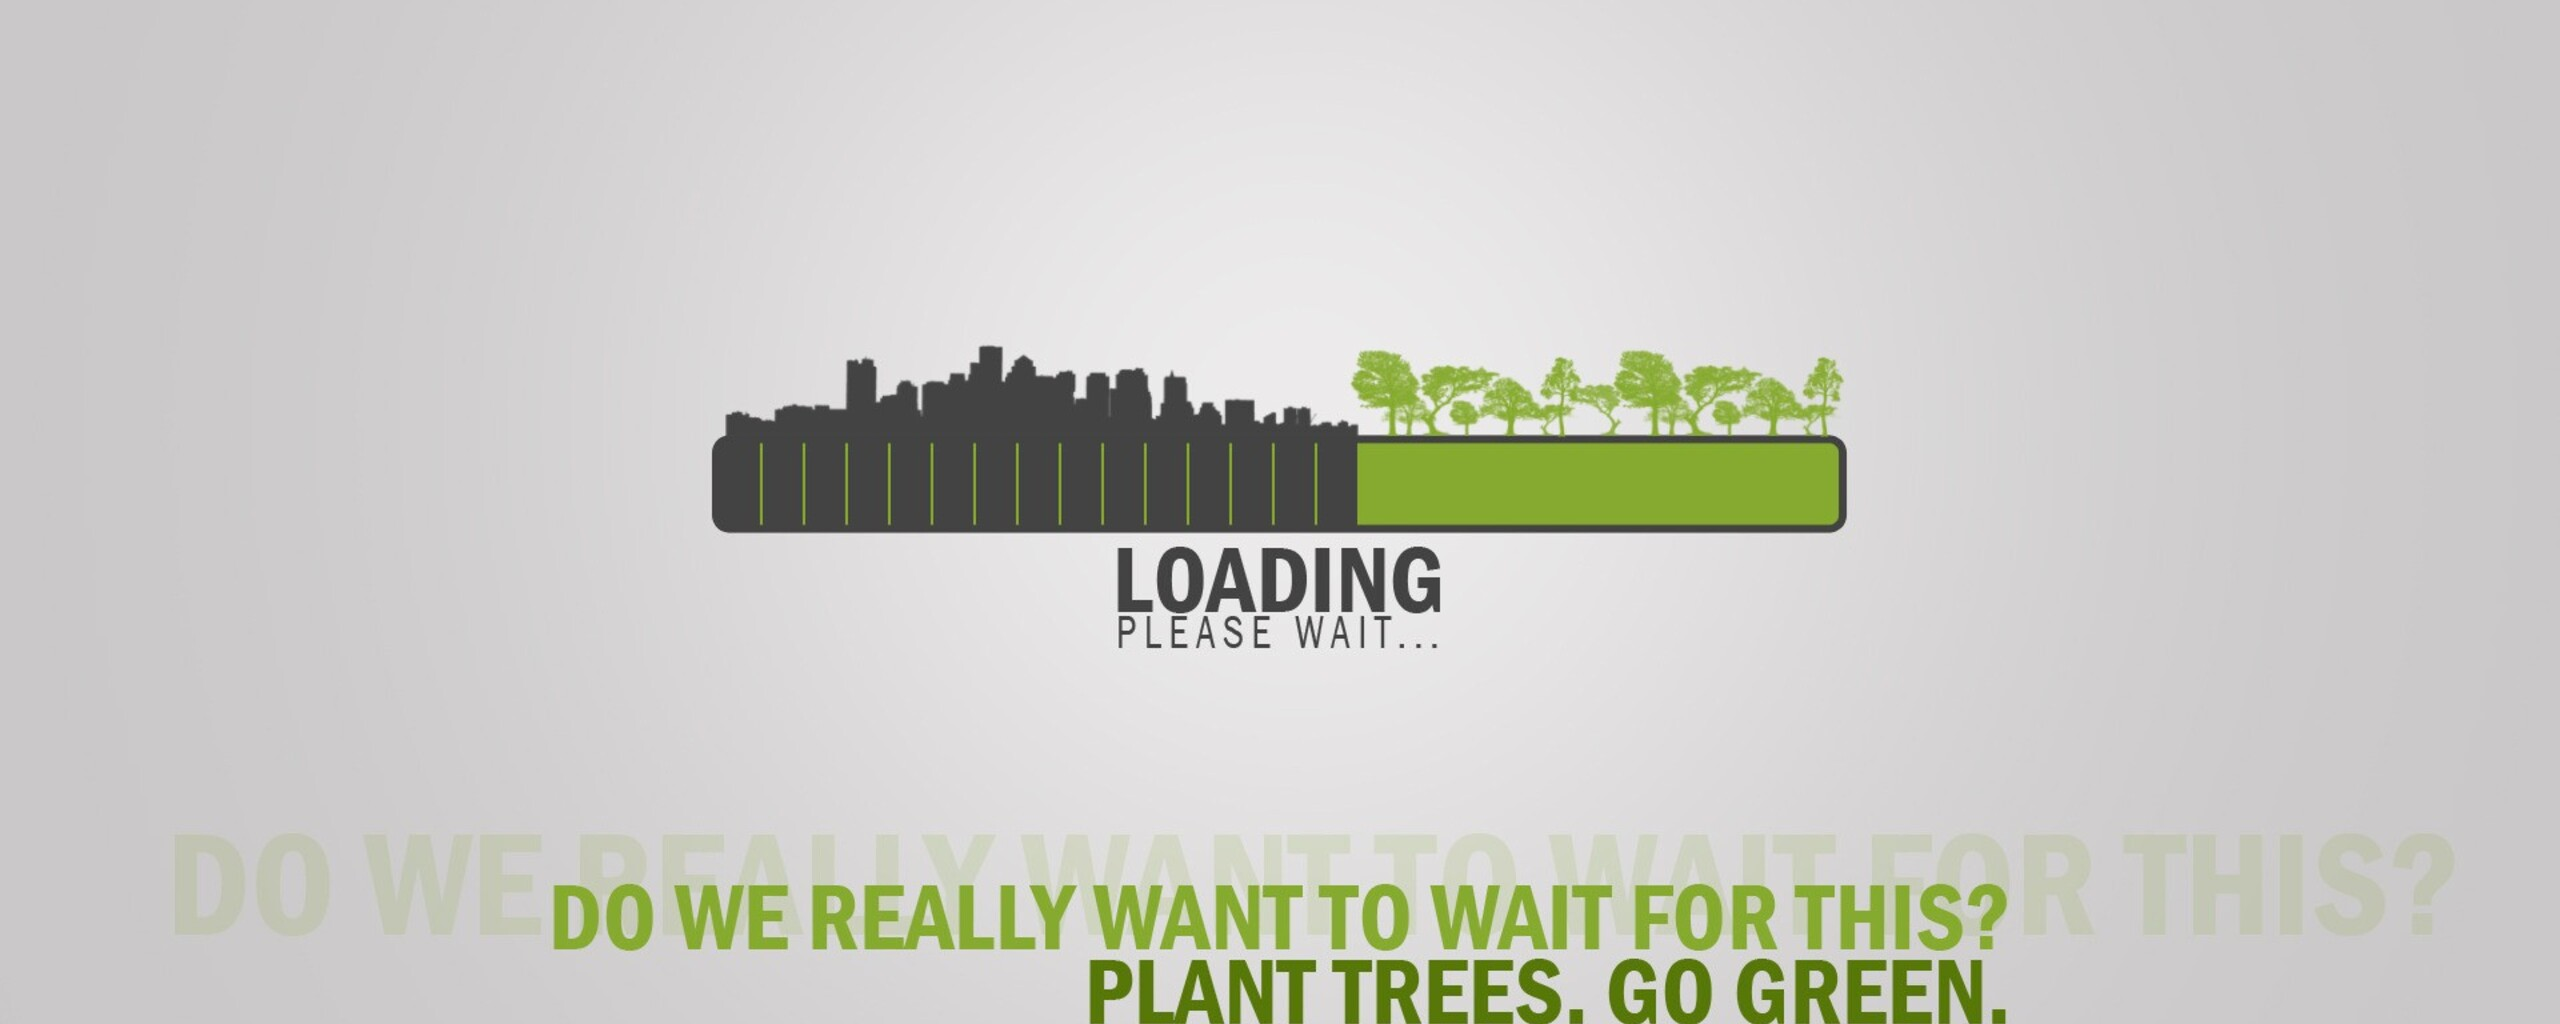 go-green-inspirational-typography-image.jpg